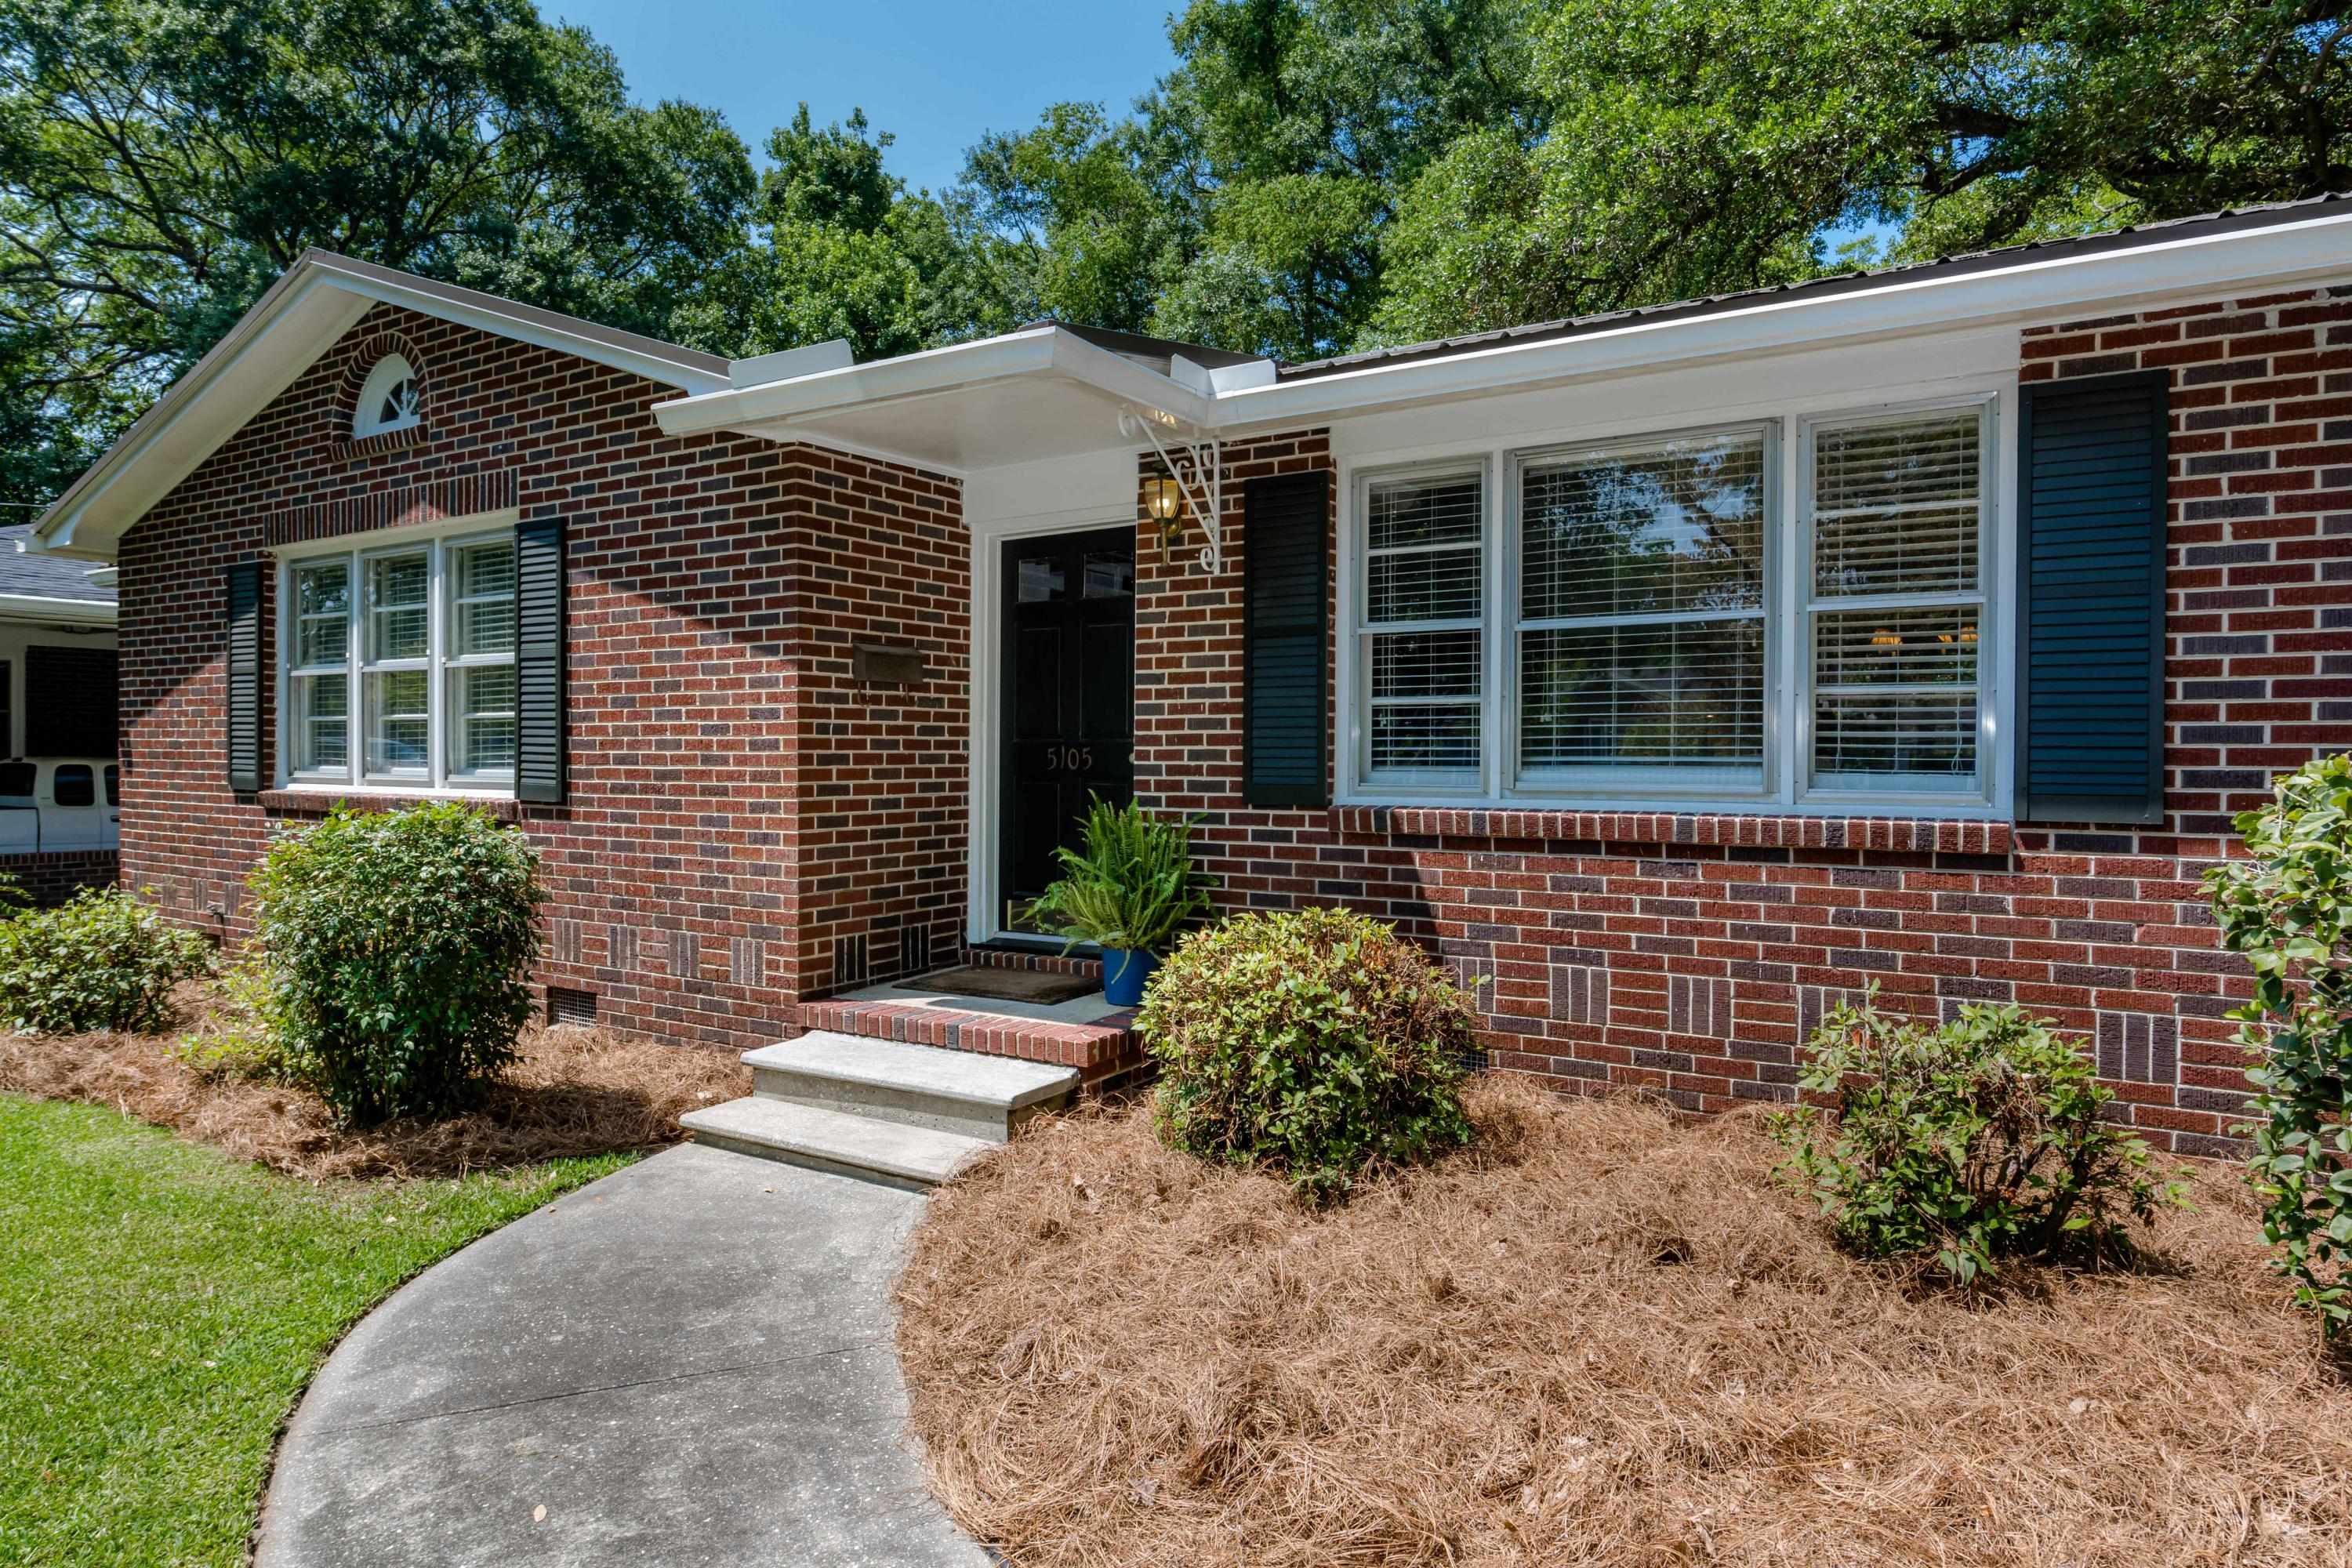 5105 Temple Street North Charleston, SC 29405